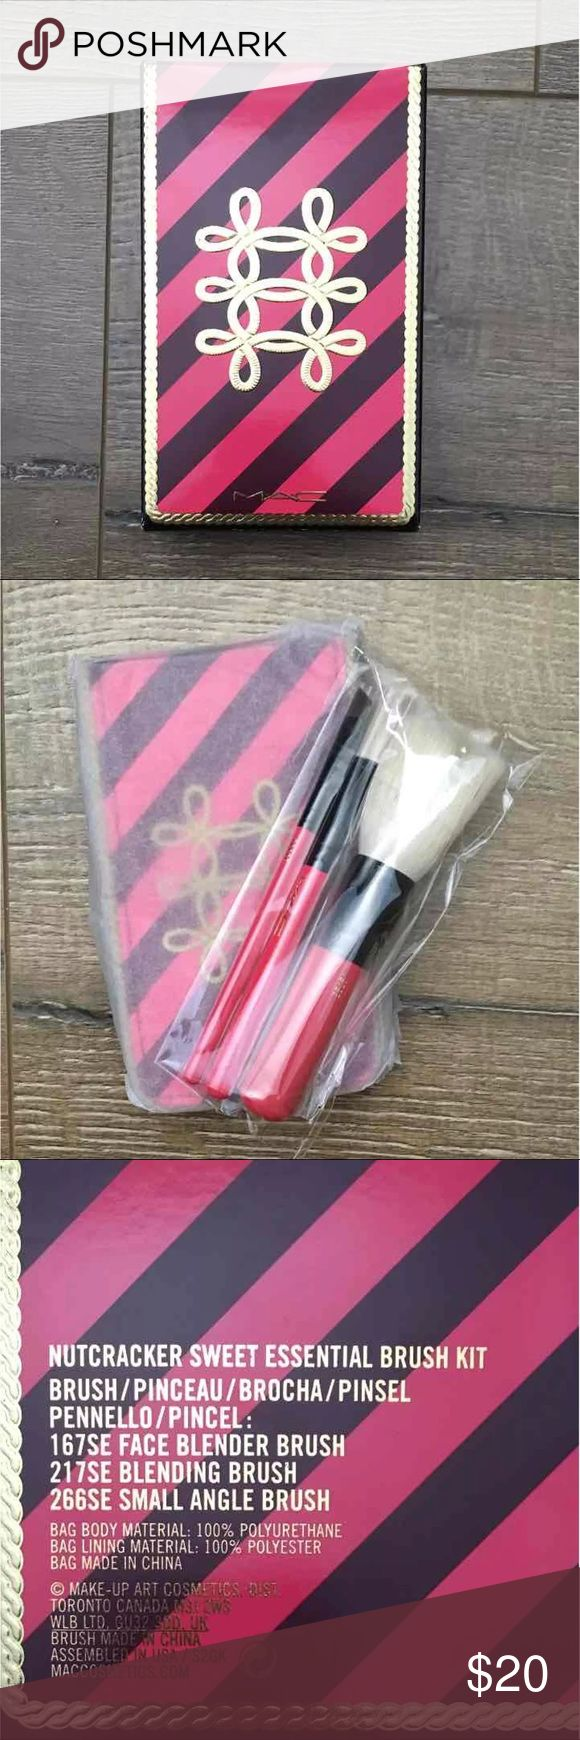 Brand New MAC Nutcracker Travel Brush Kit Brand new, never opened/used MAC Nutcracker kit MAC Cosmetics Makeup Brushes & Tools